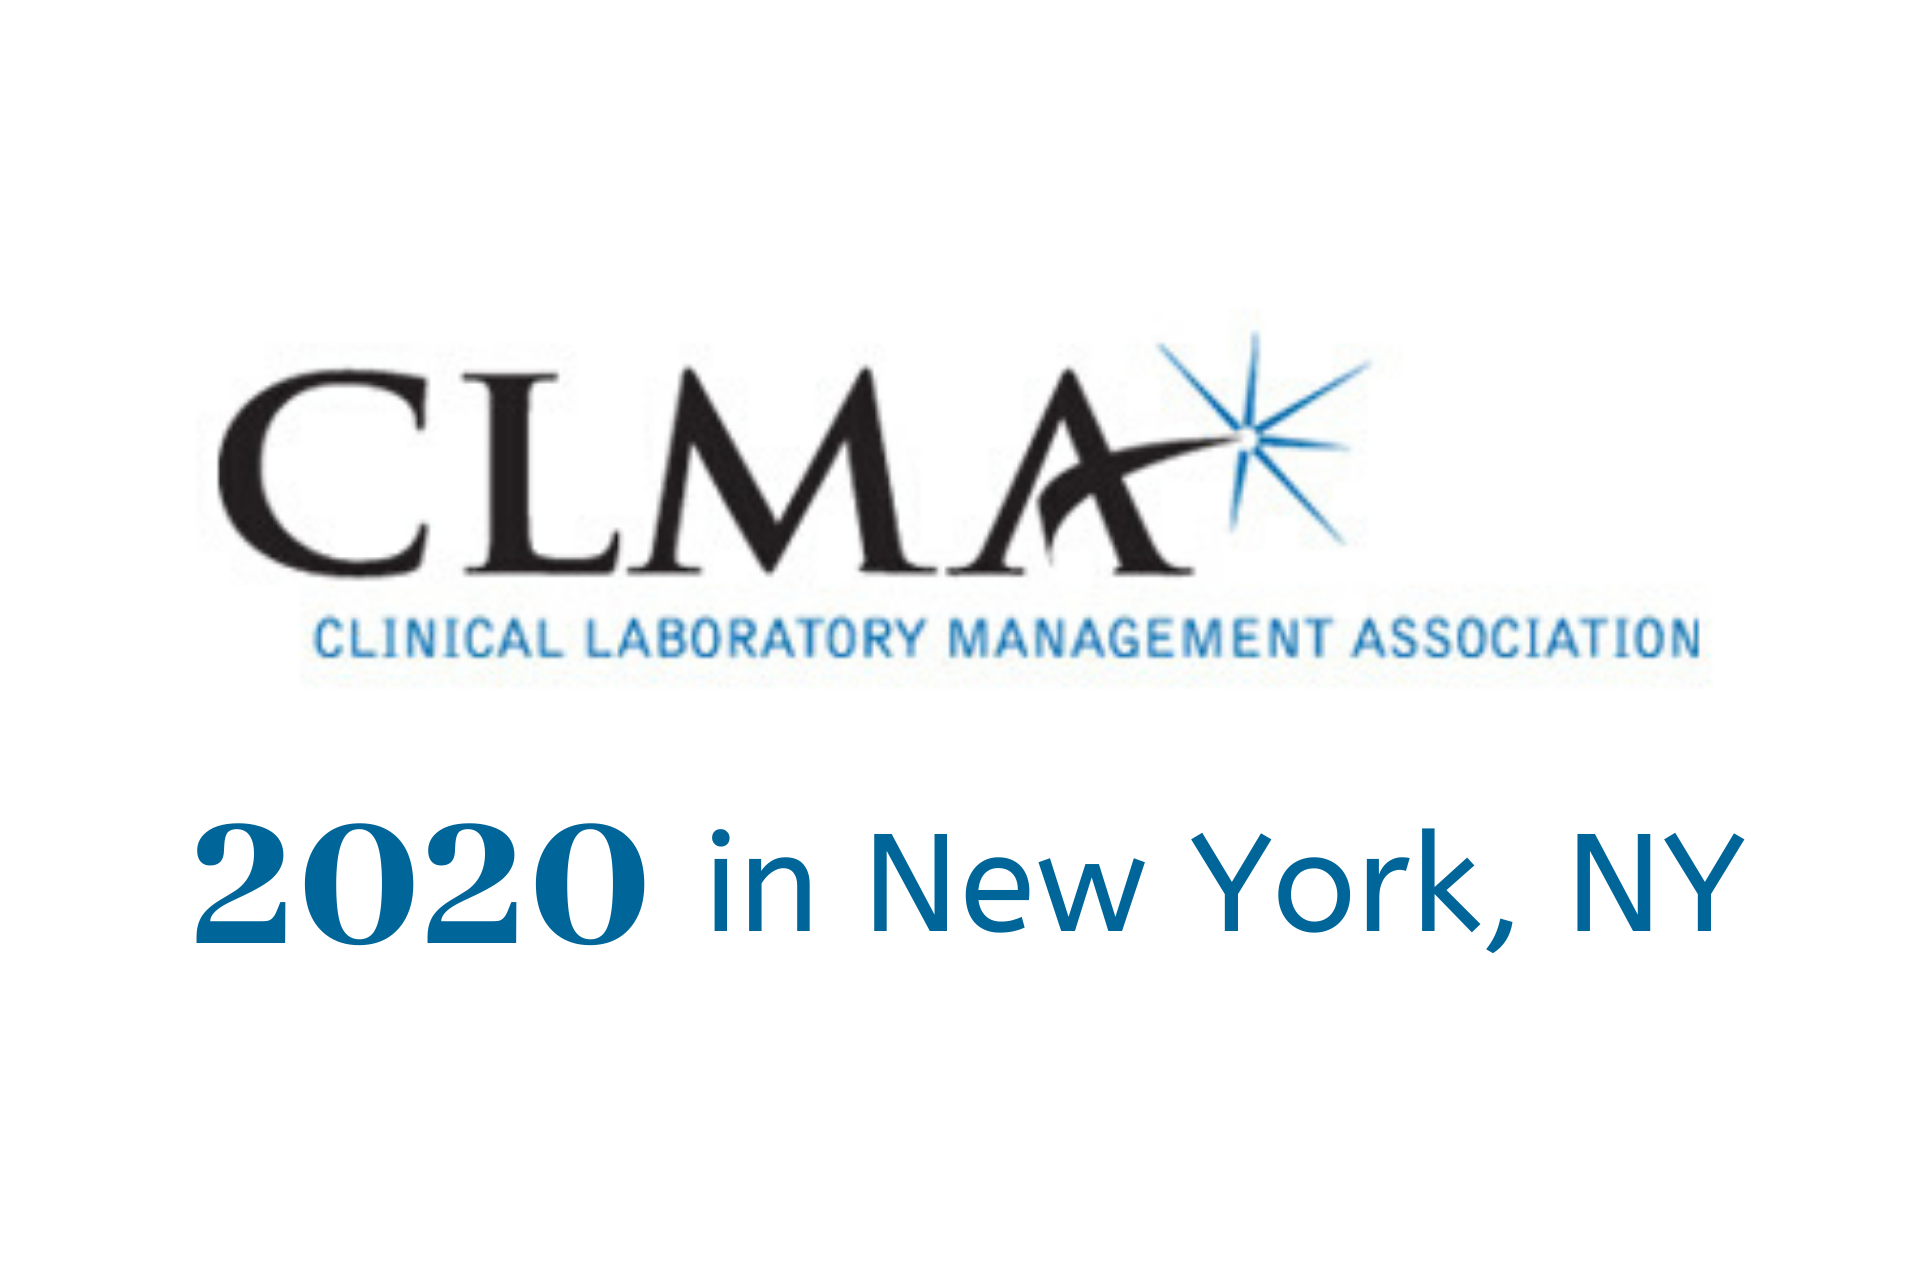 CLMA Annual Meeting 2020 in New York NY with Lifepoint Informatics